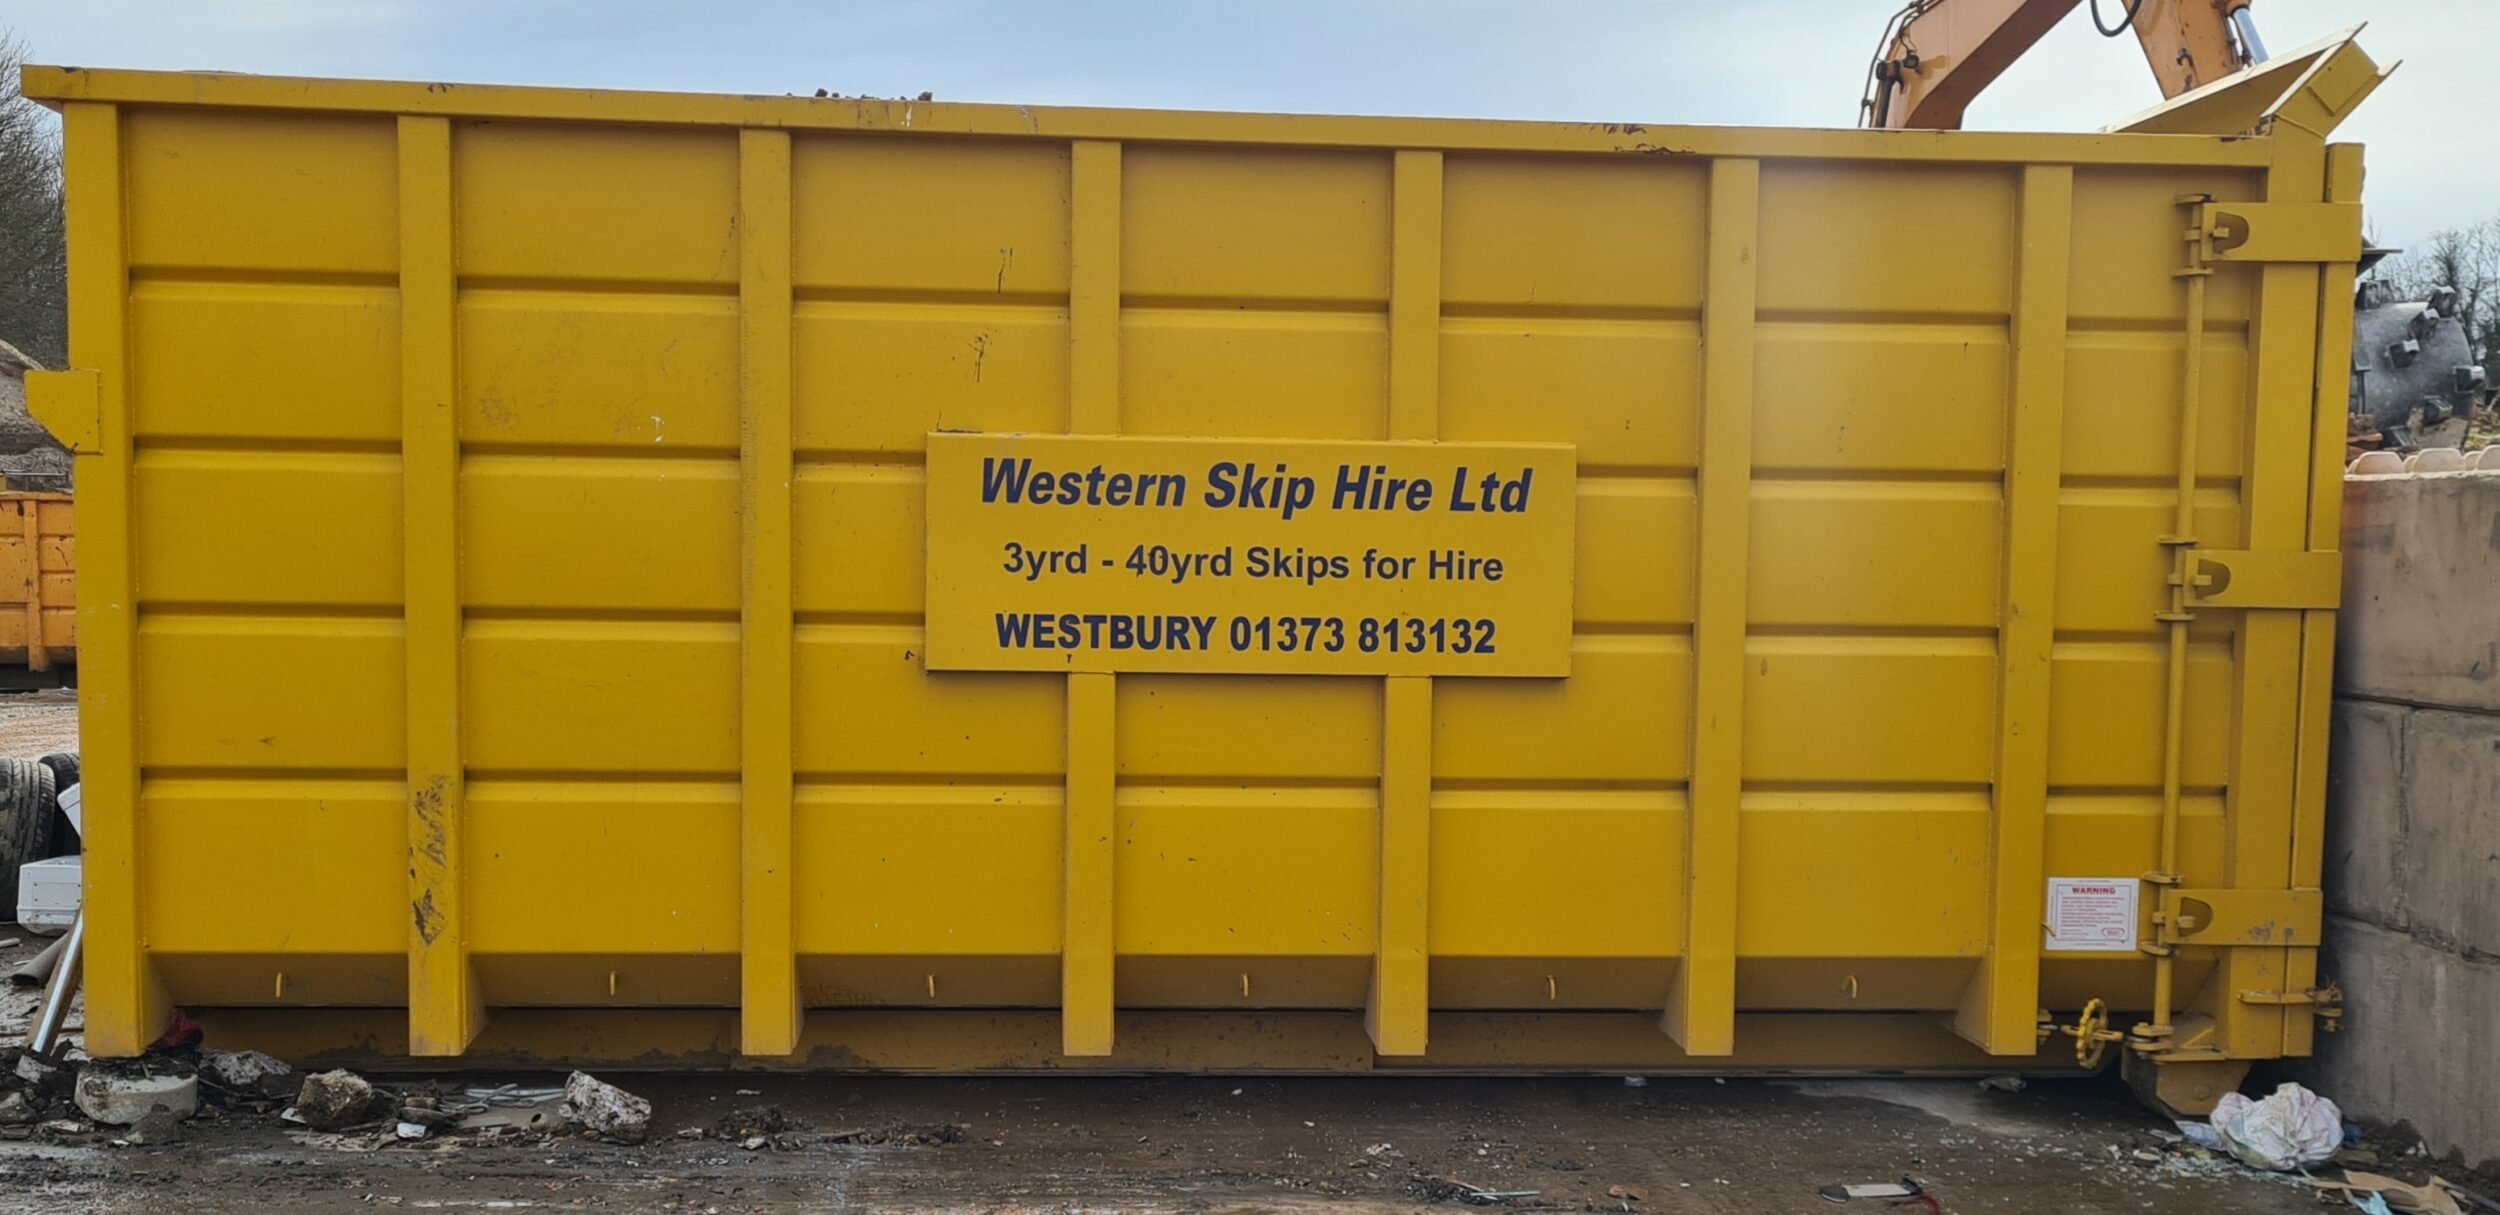 Yellow 40 yard skip. Western Skip Hire, Skip Hire, Sweeper Hire, Aggregates, Recycled Waste Stone and Concrete. Westbury, Frome, Somerset, Wiltshire.